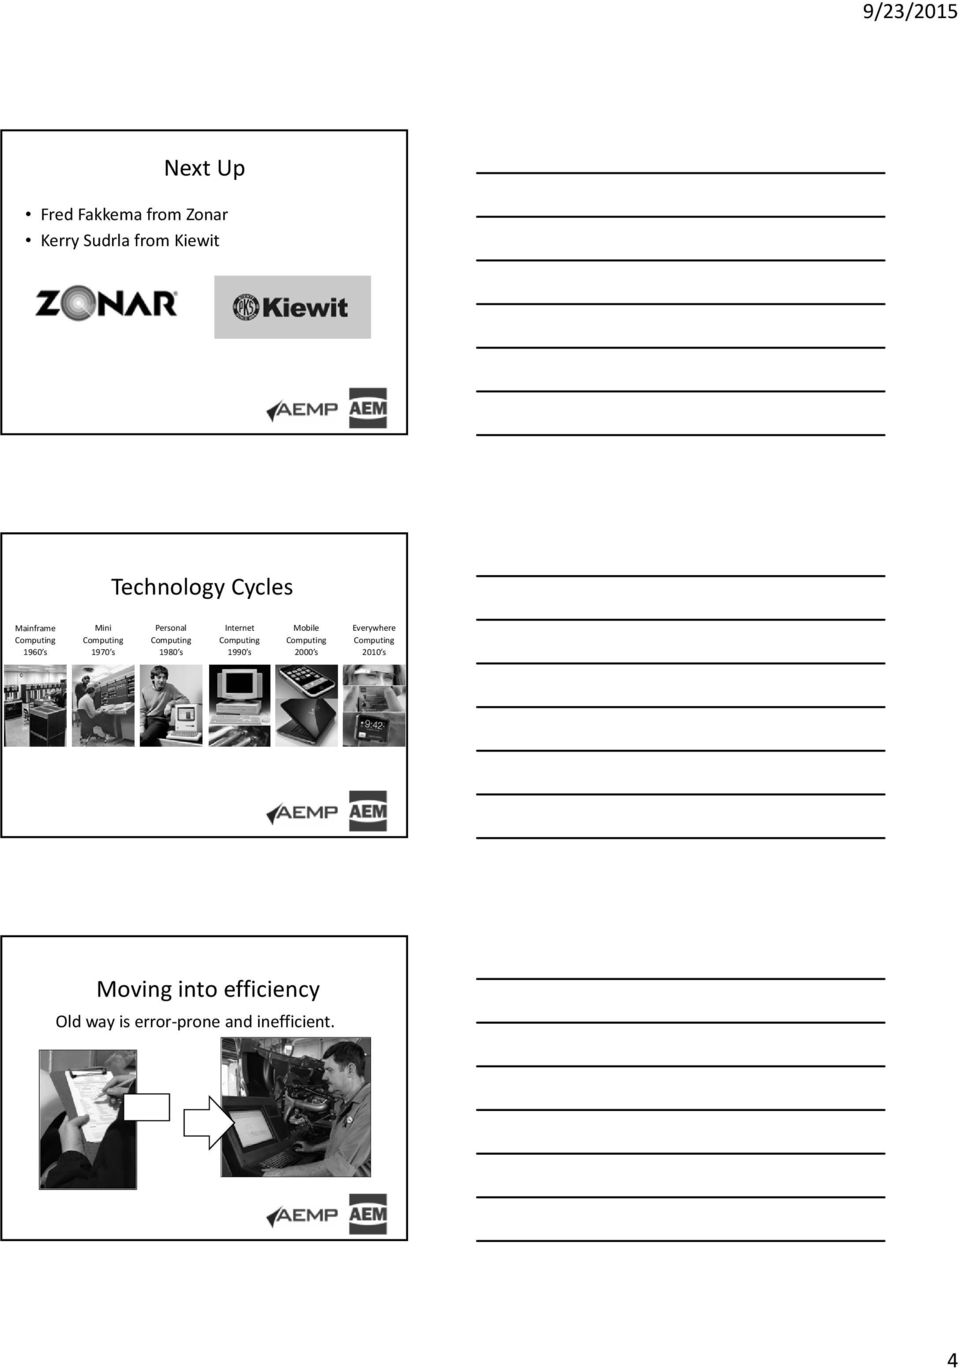 Daily Equipment Inspection Programs - PDF